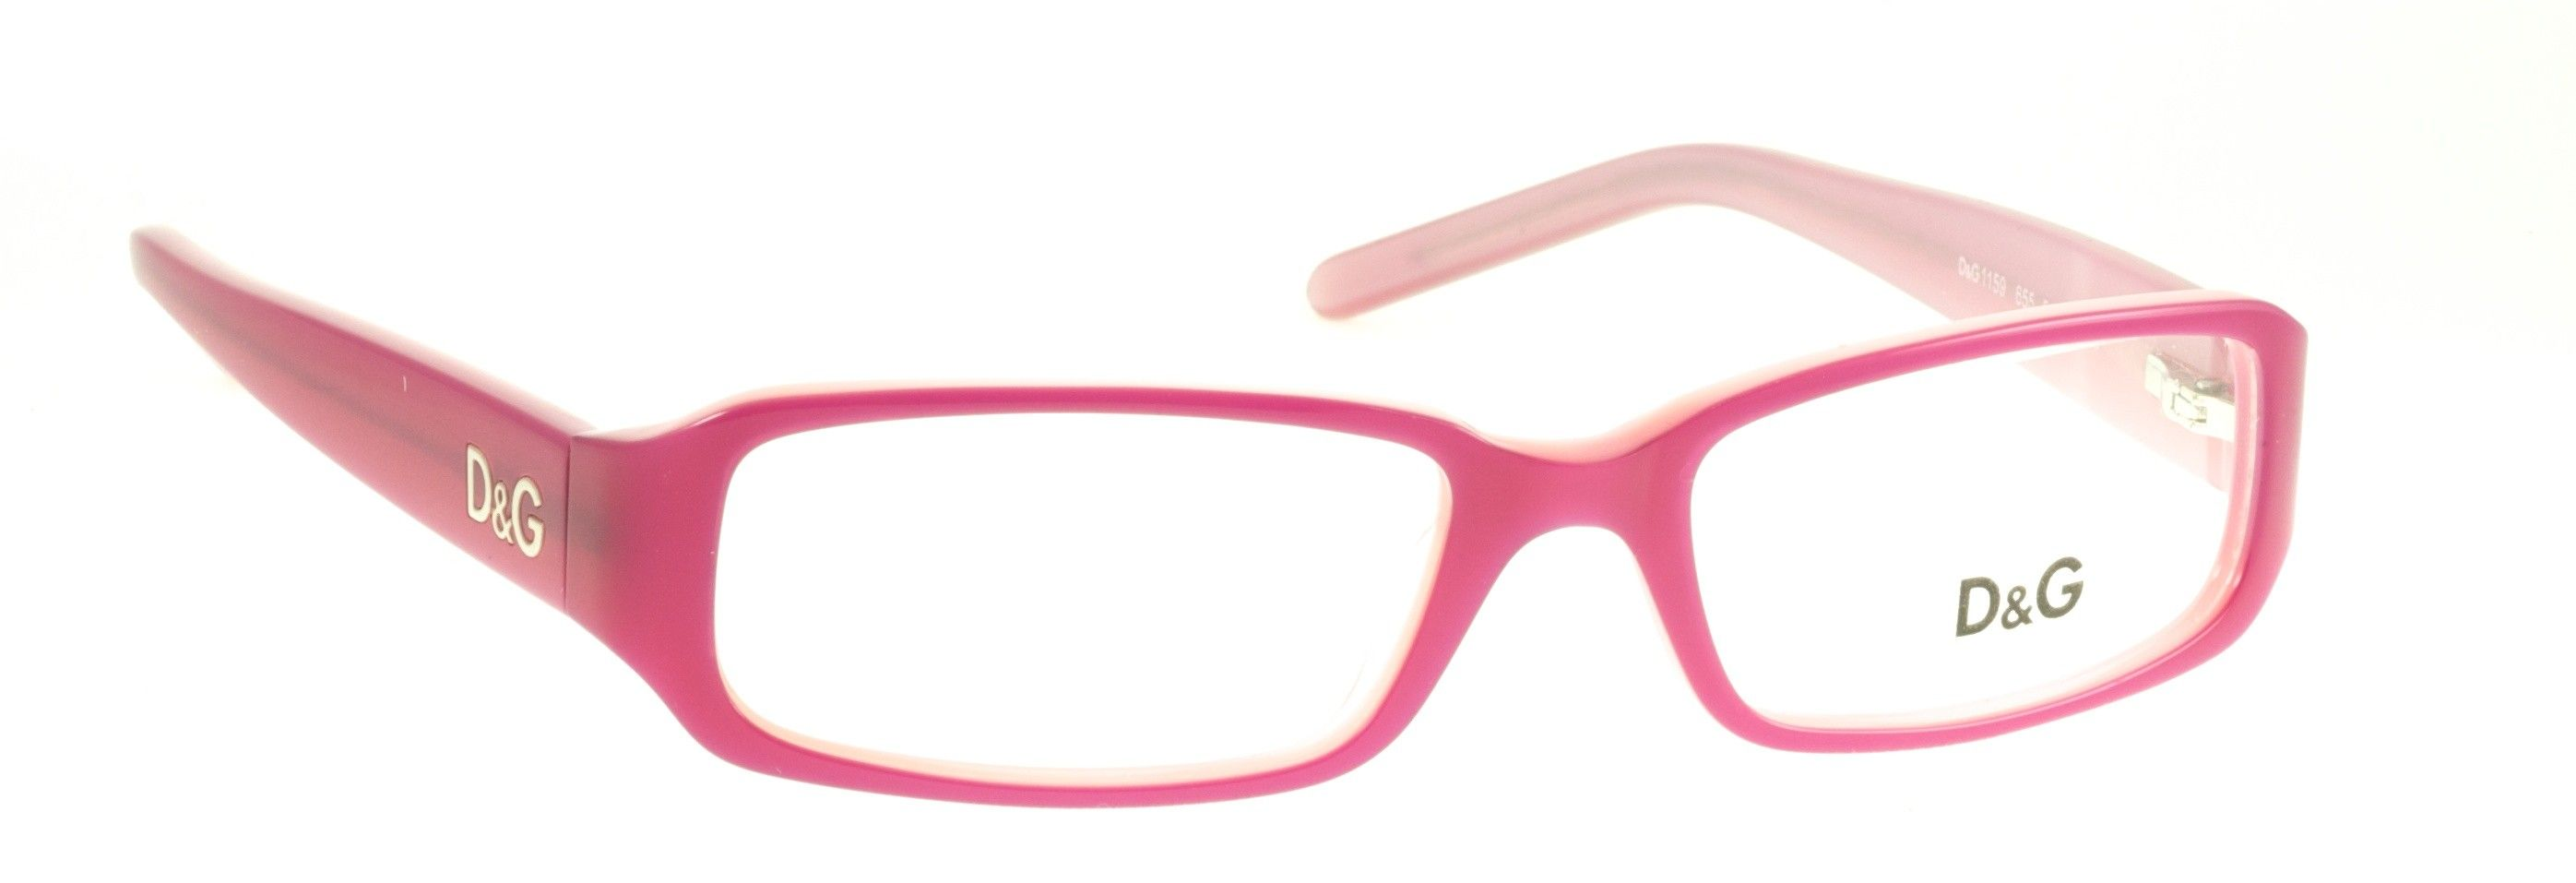 dg glasses model 1159 655 a pair of pink coloured rectangle dg designer glasses with